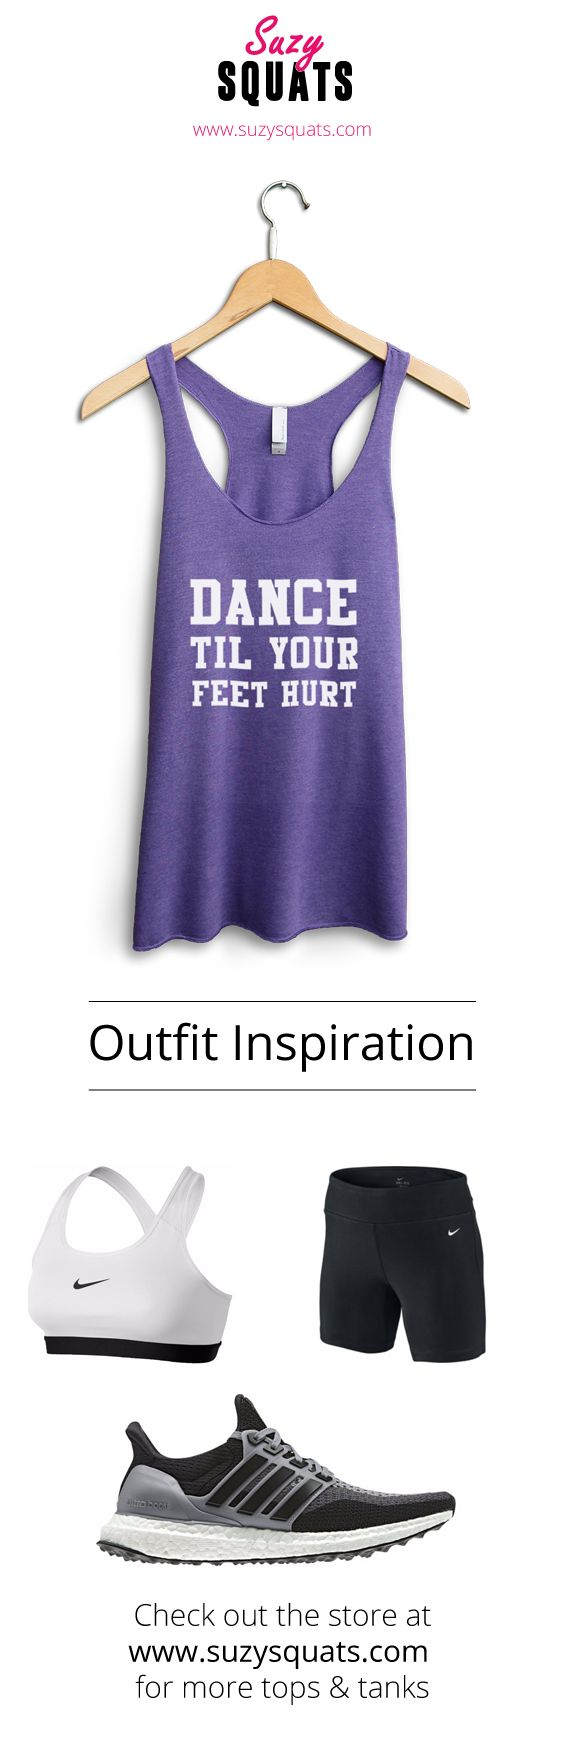 Suzy Squats funny dancing tank top, perfect to wear during your next dance practice or as a gift for a dancer friend! You can find more funny workout clothing for the dance hall at the Suzy Squats store by clicking the link above. Dancer Outfit | Dancing Gifts | Workout Outfit | Fitness Women | DancingSuzy | SuzyOutfitInspiration